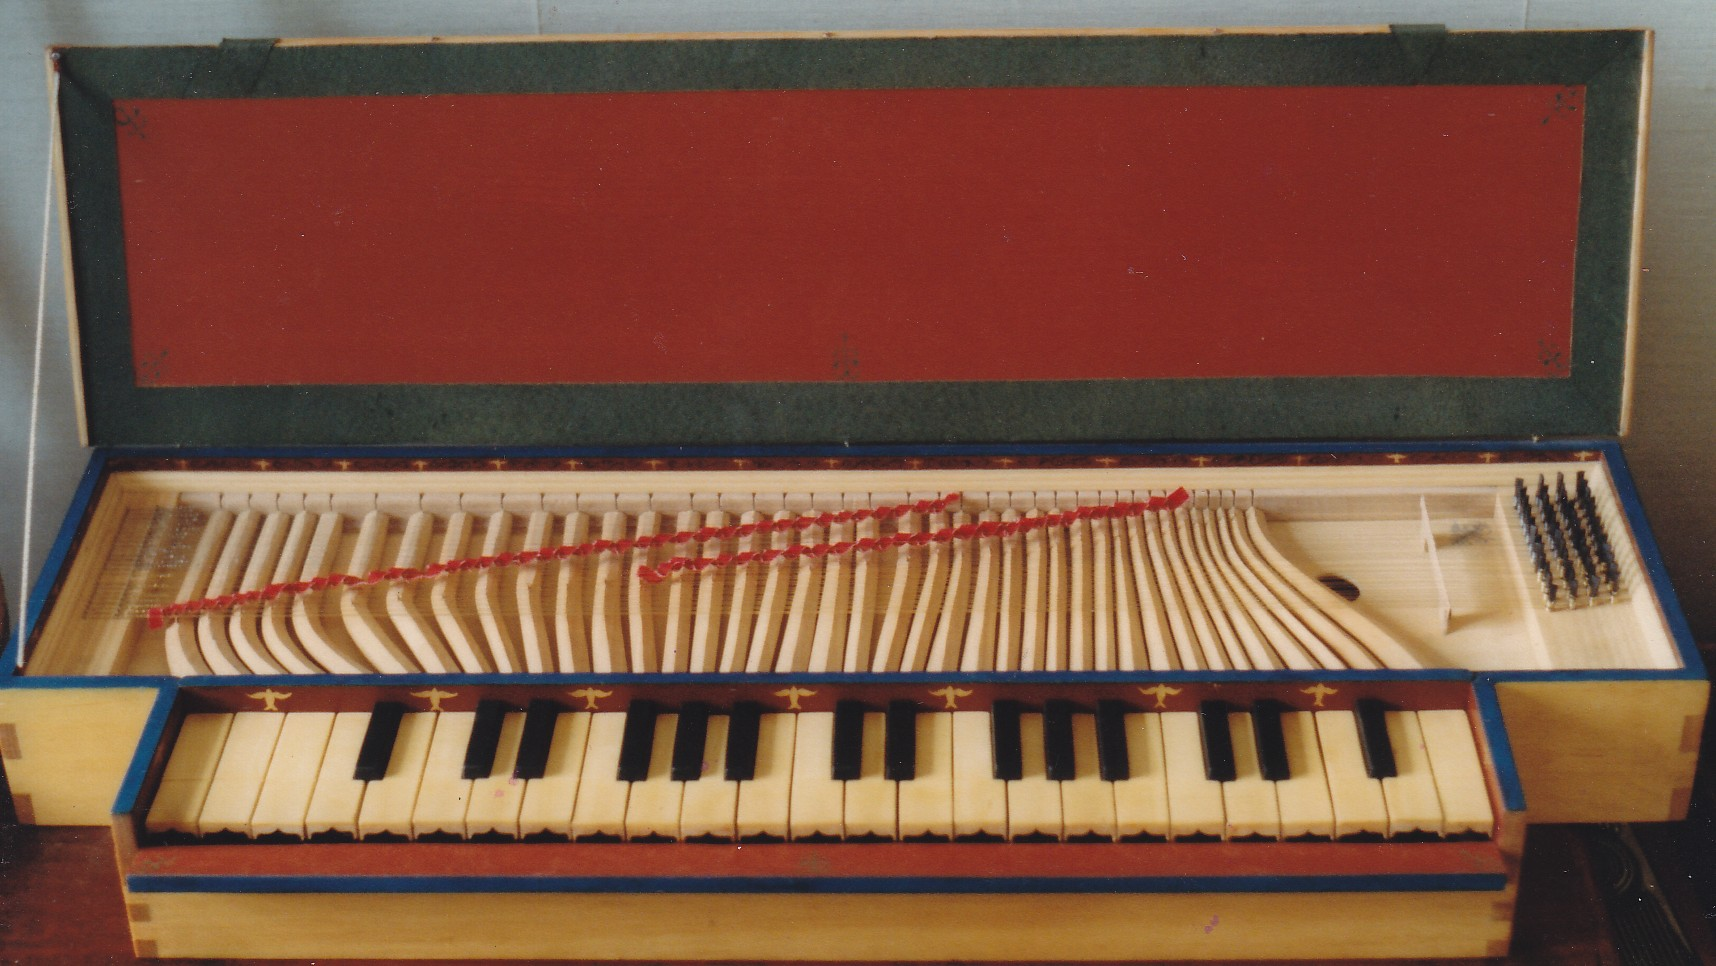 1983 Clavichord after van Hemessen 1537